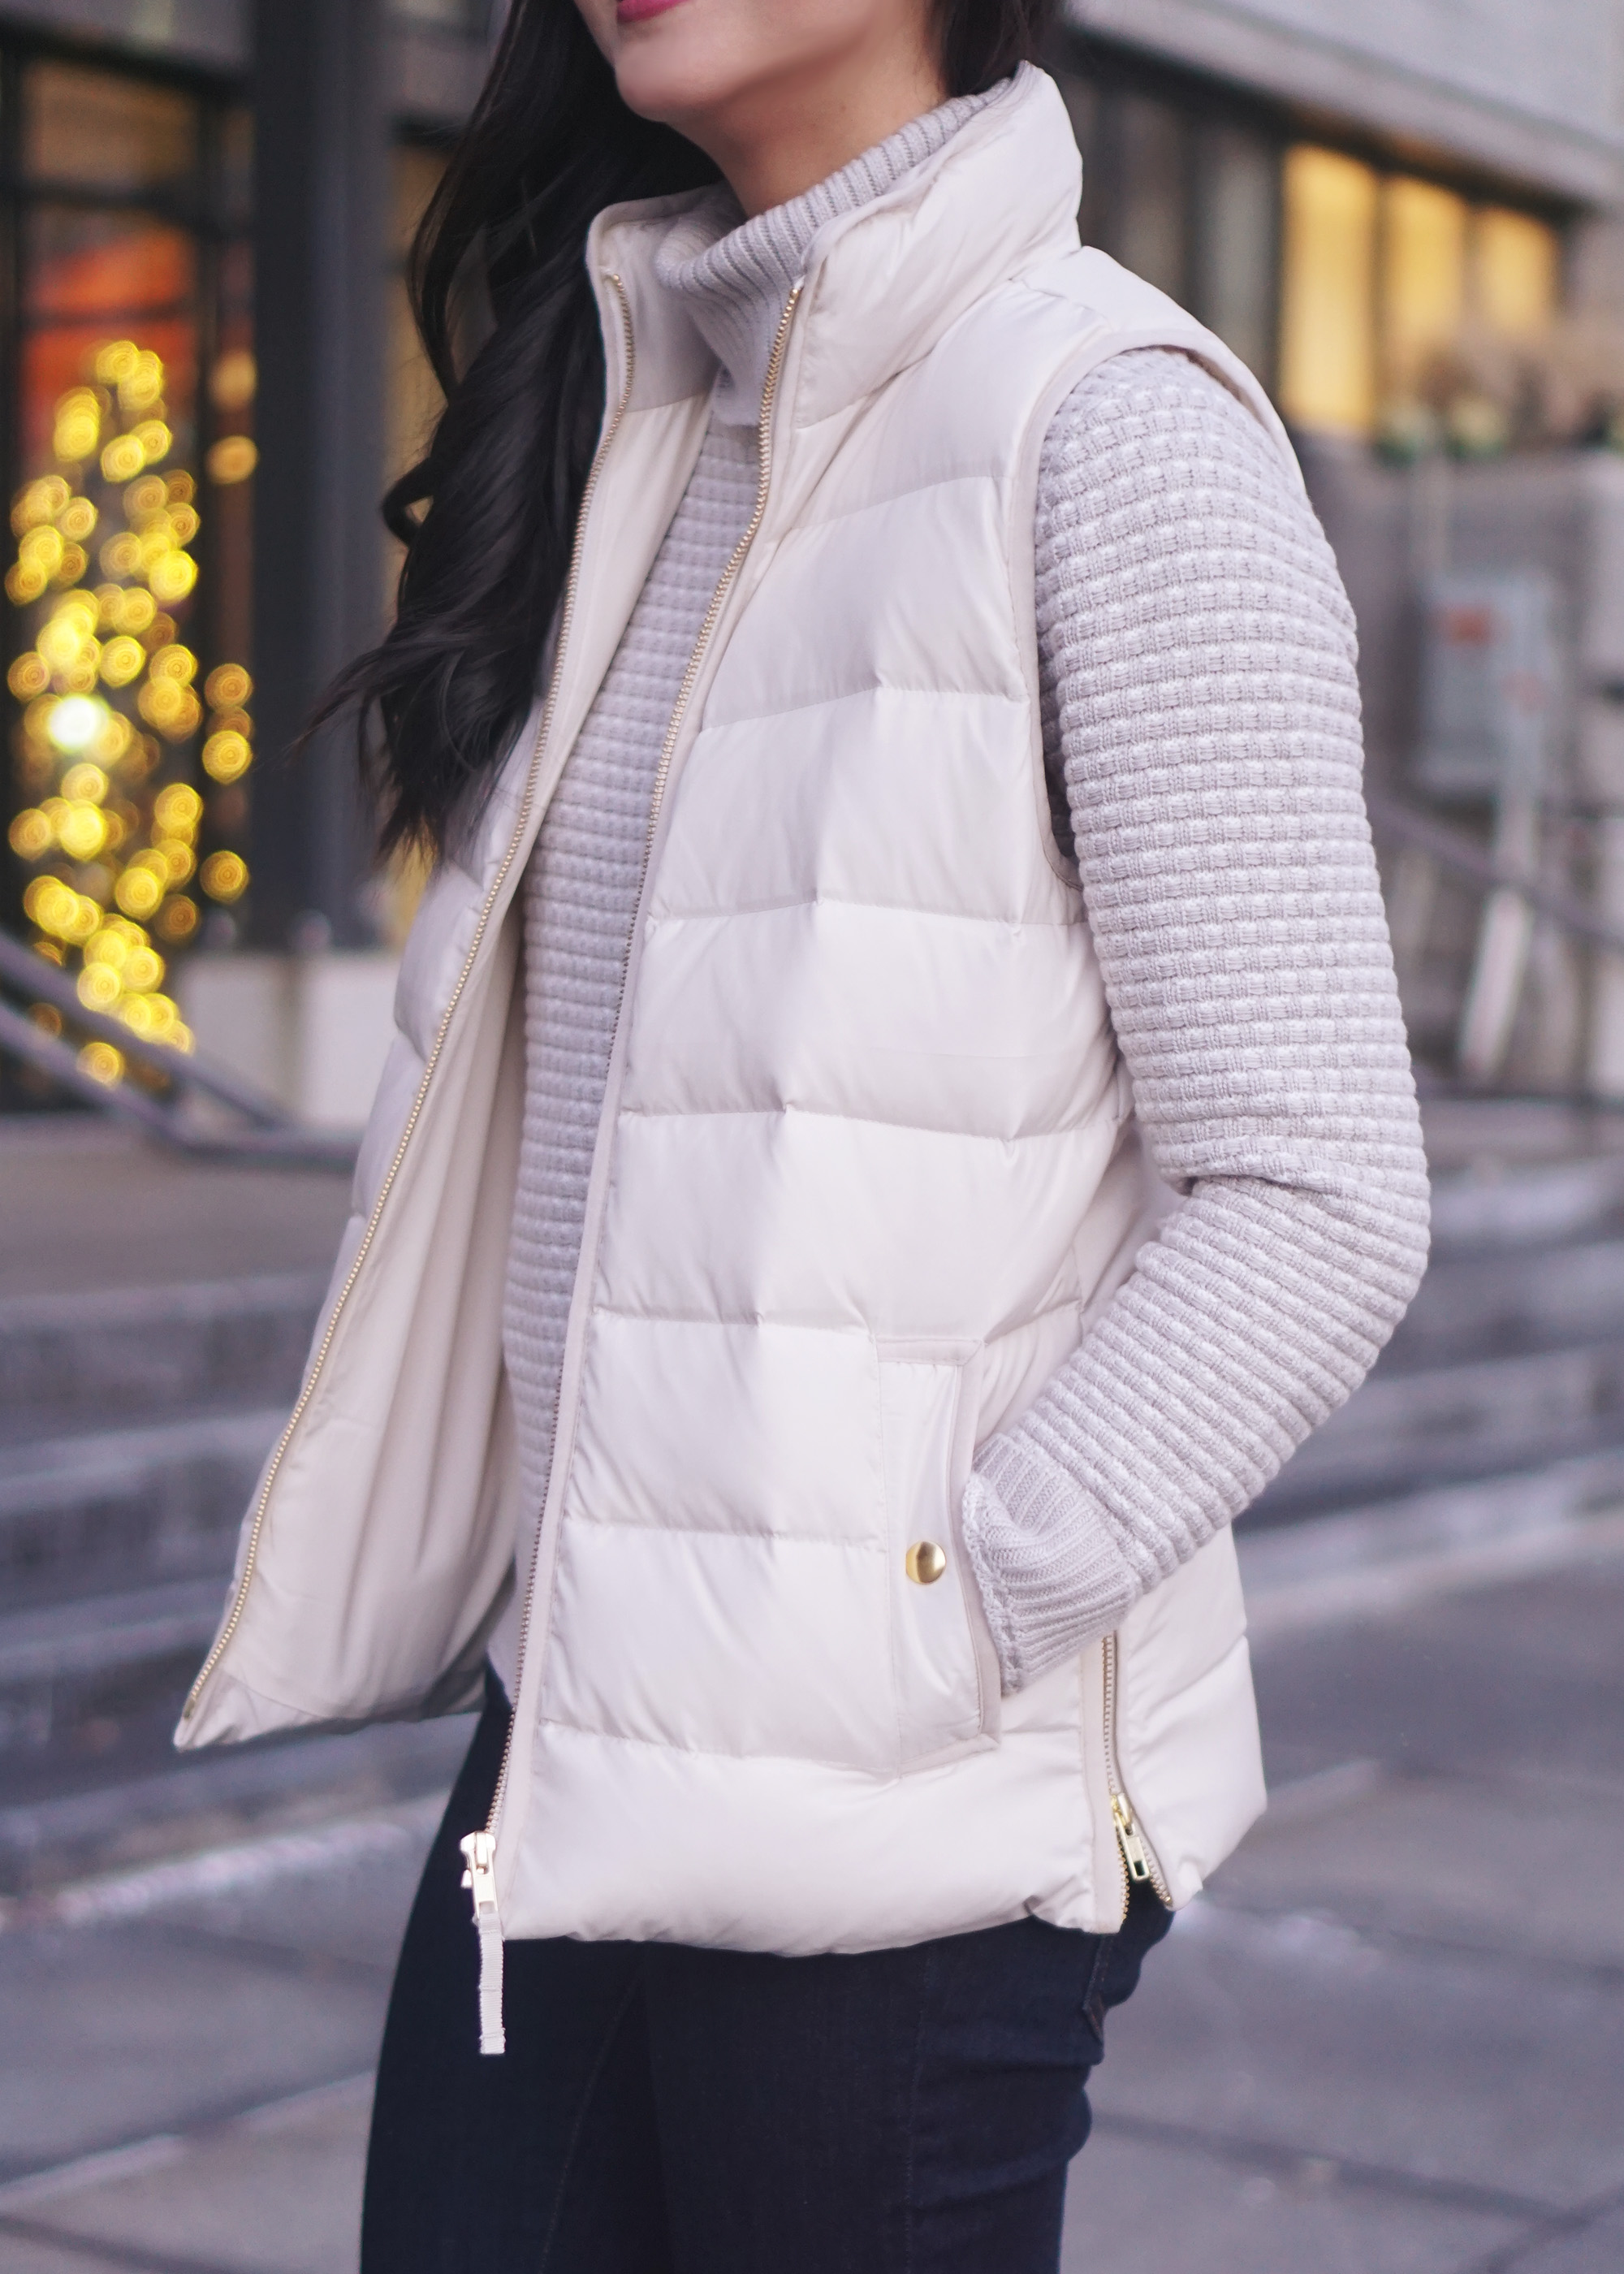 Winter Outfit Ideas / Grey Turtleneck & Cream Puffer Vest